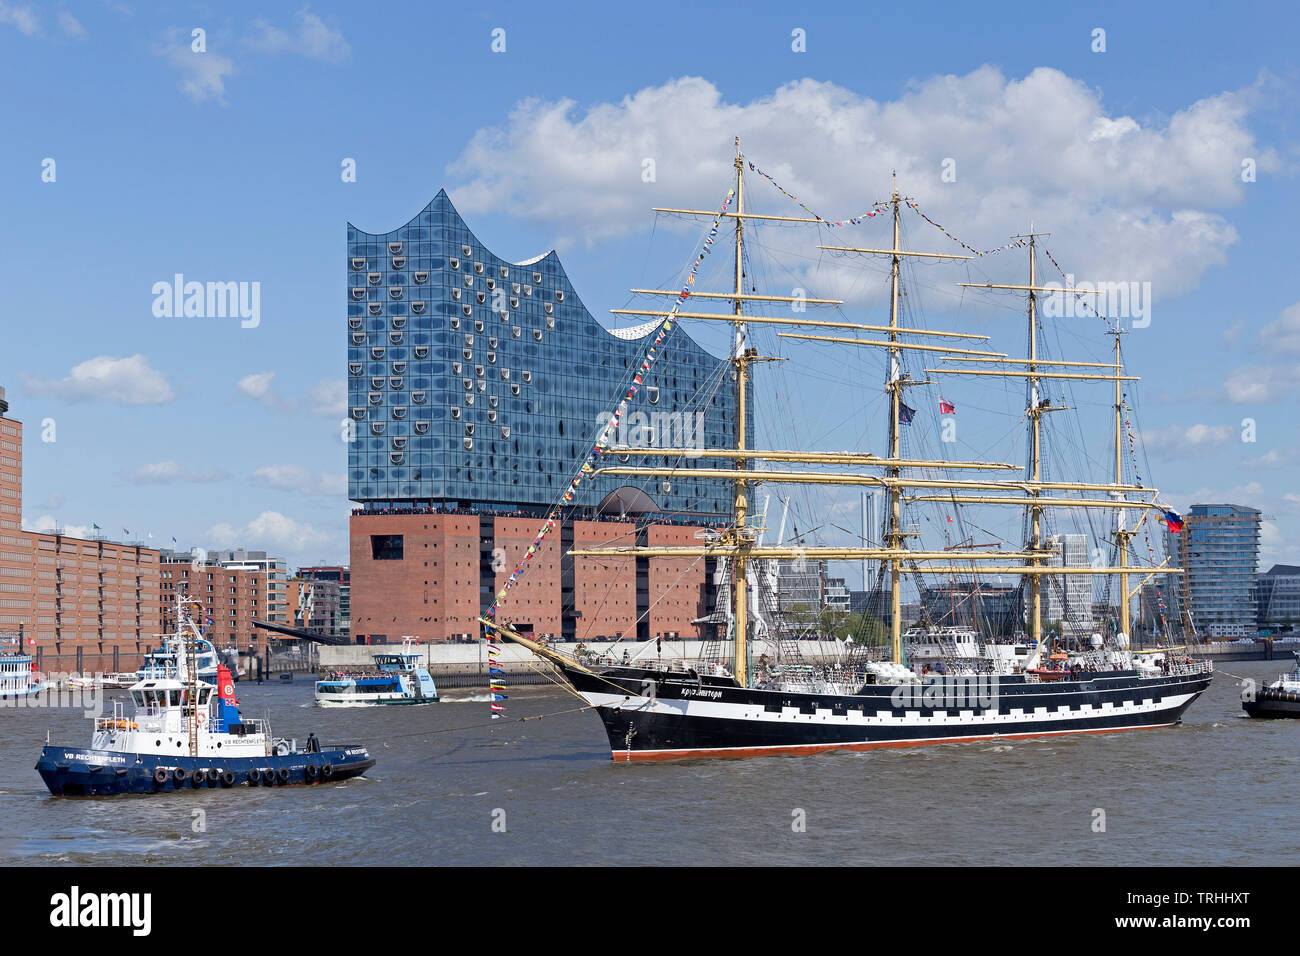 sailing ship in front of Elbe Philharmonic Hall, 830. Harbour Birthday, Harbour, Hamburg, Germany - Stock Image